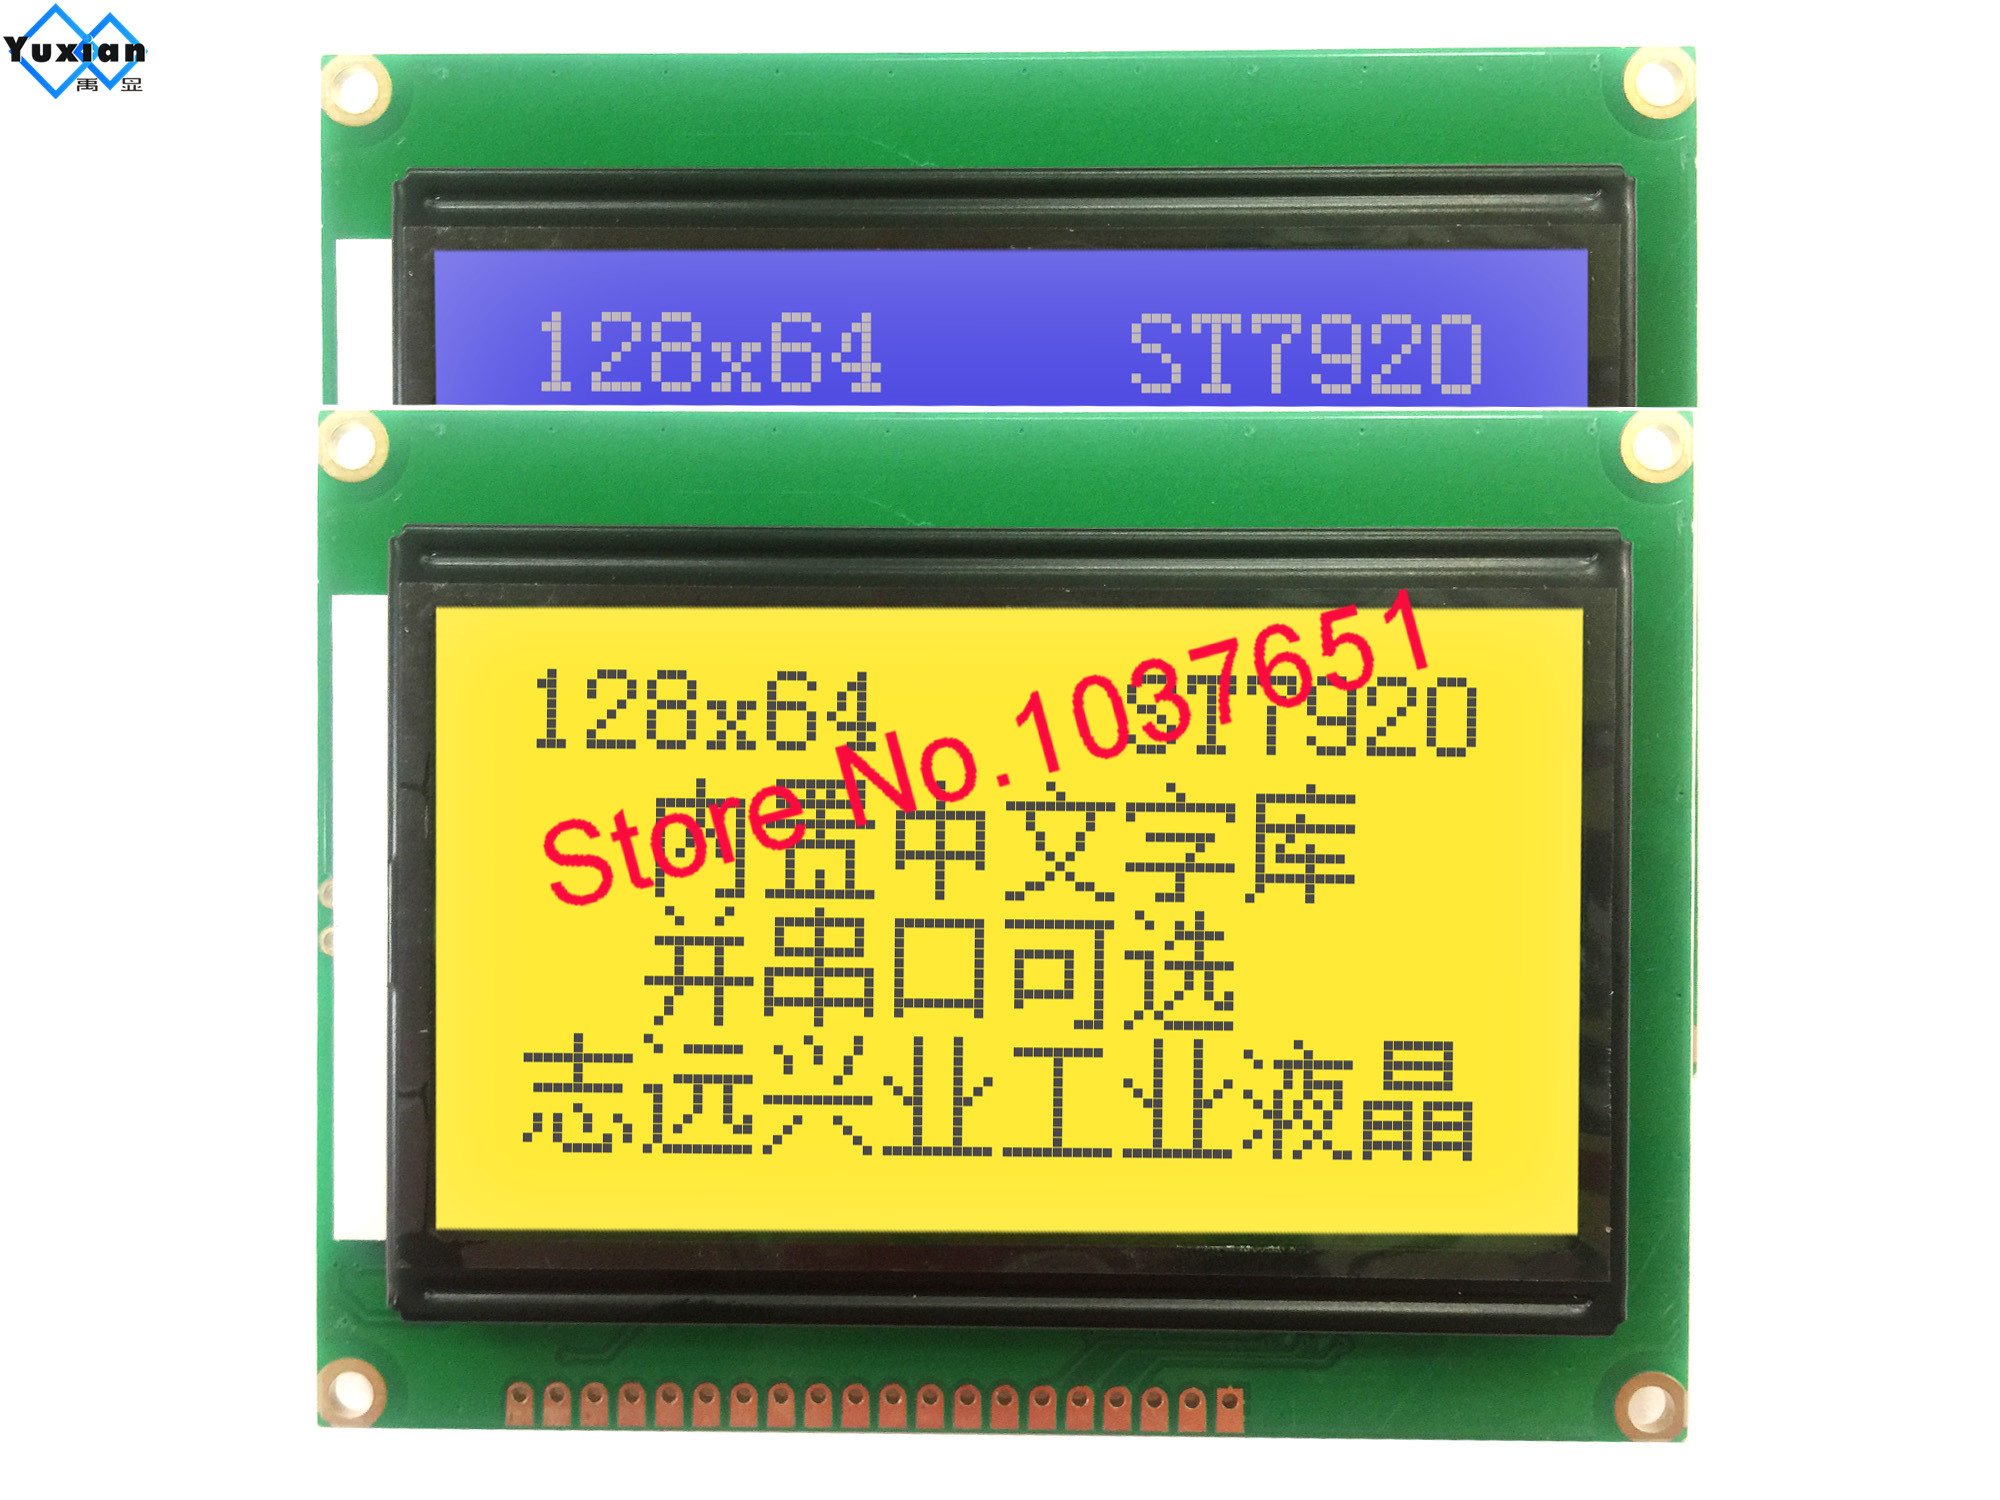 St7920 12864 128x64 lcd display blue backlight parallel serial arduino 5v Z WCY